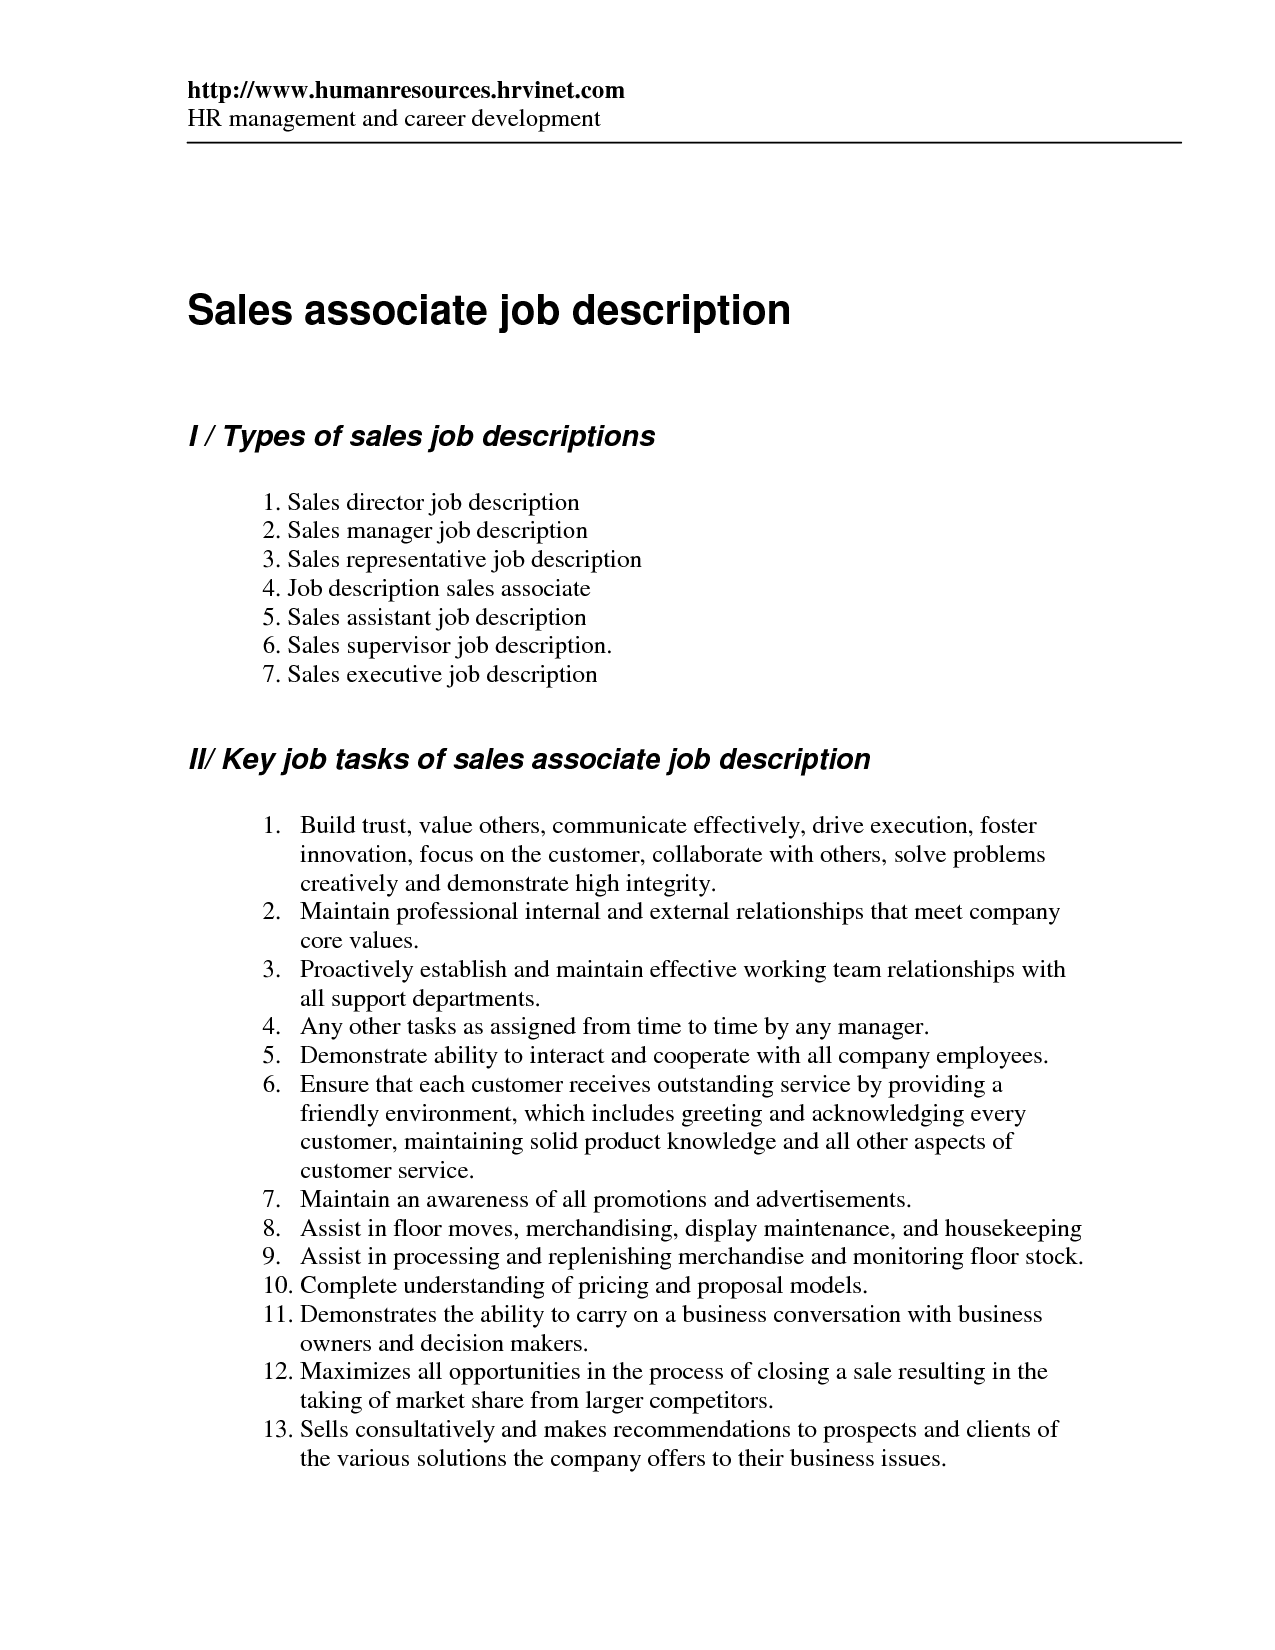 sales associate job description sales associate job description walmart